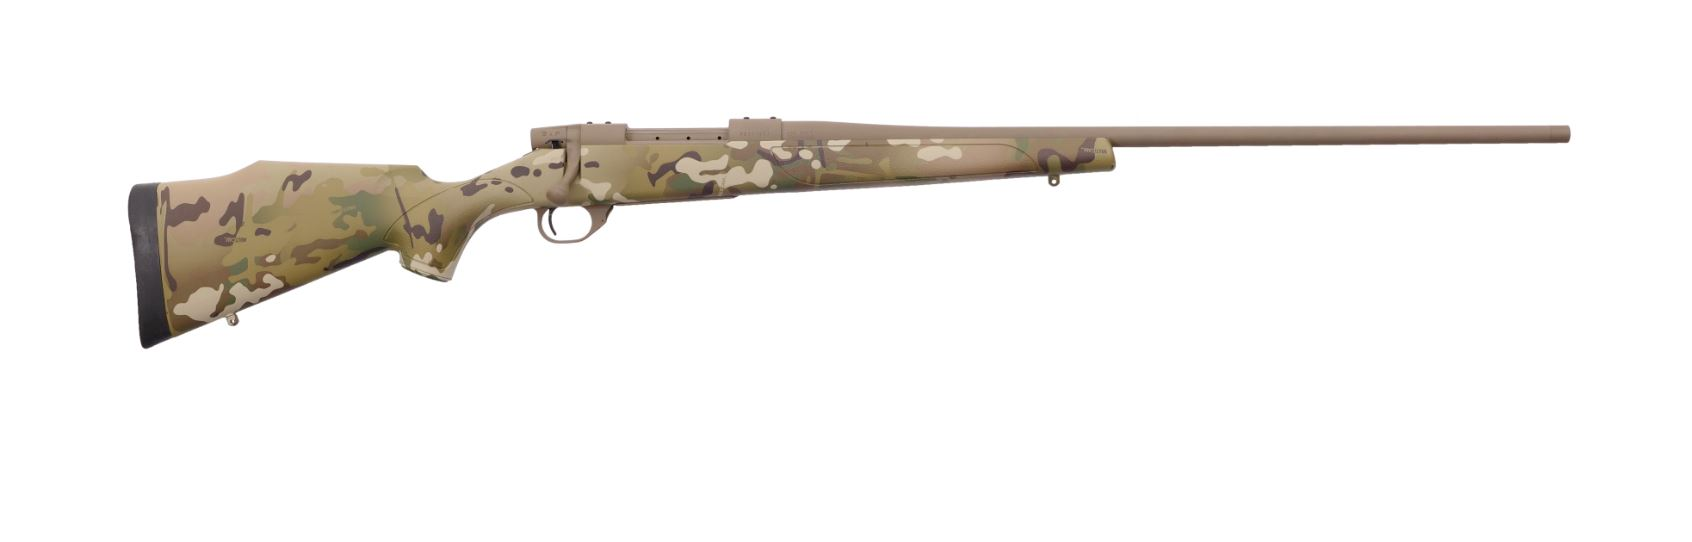 Weatherby Vanguard Mulitcam 308 Win